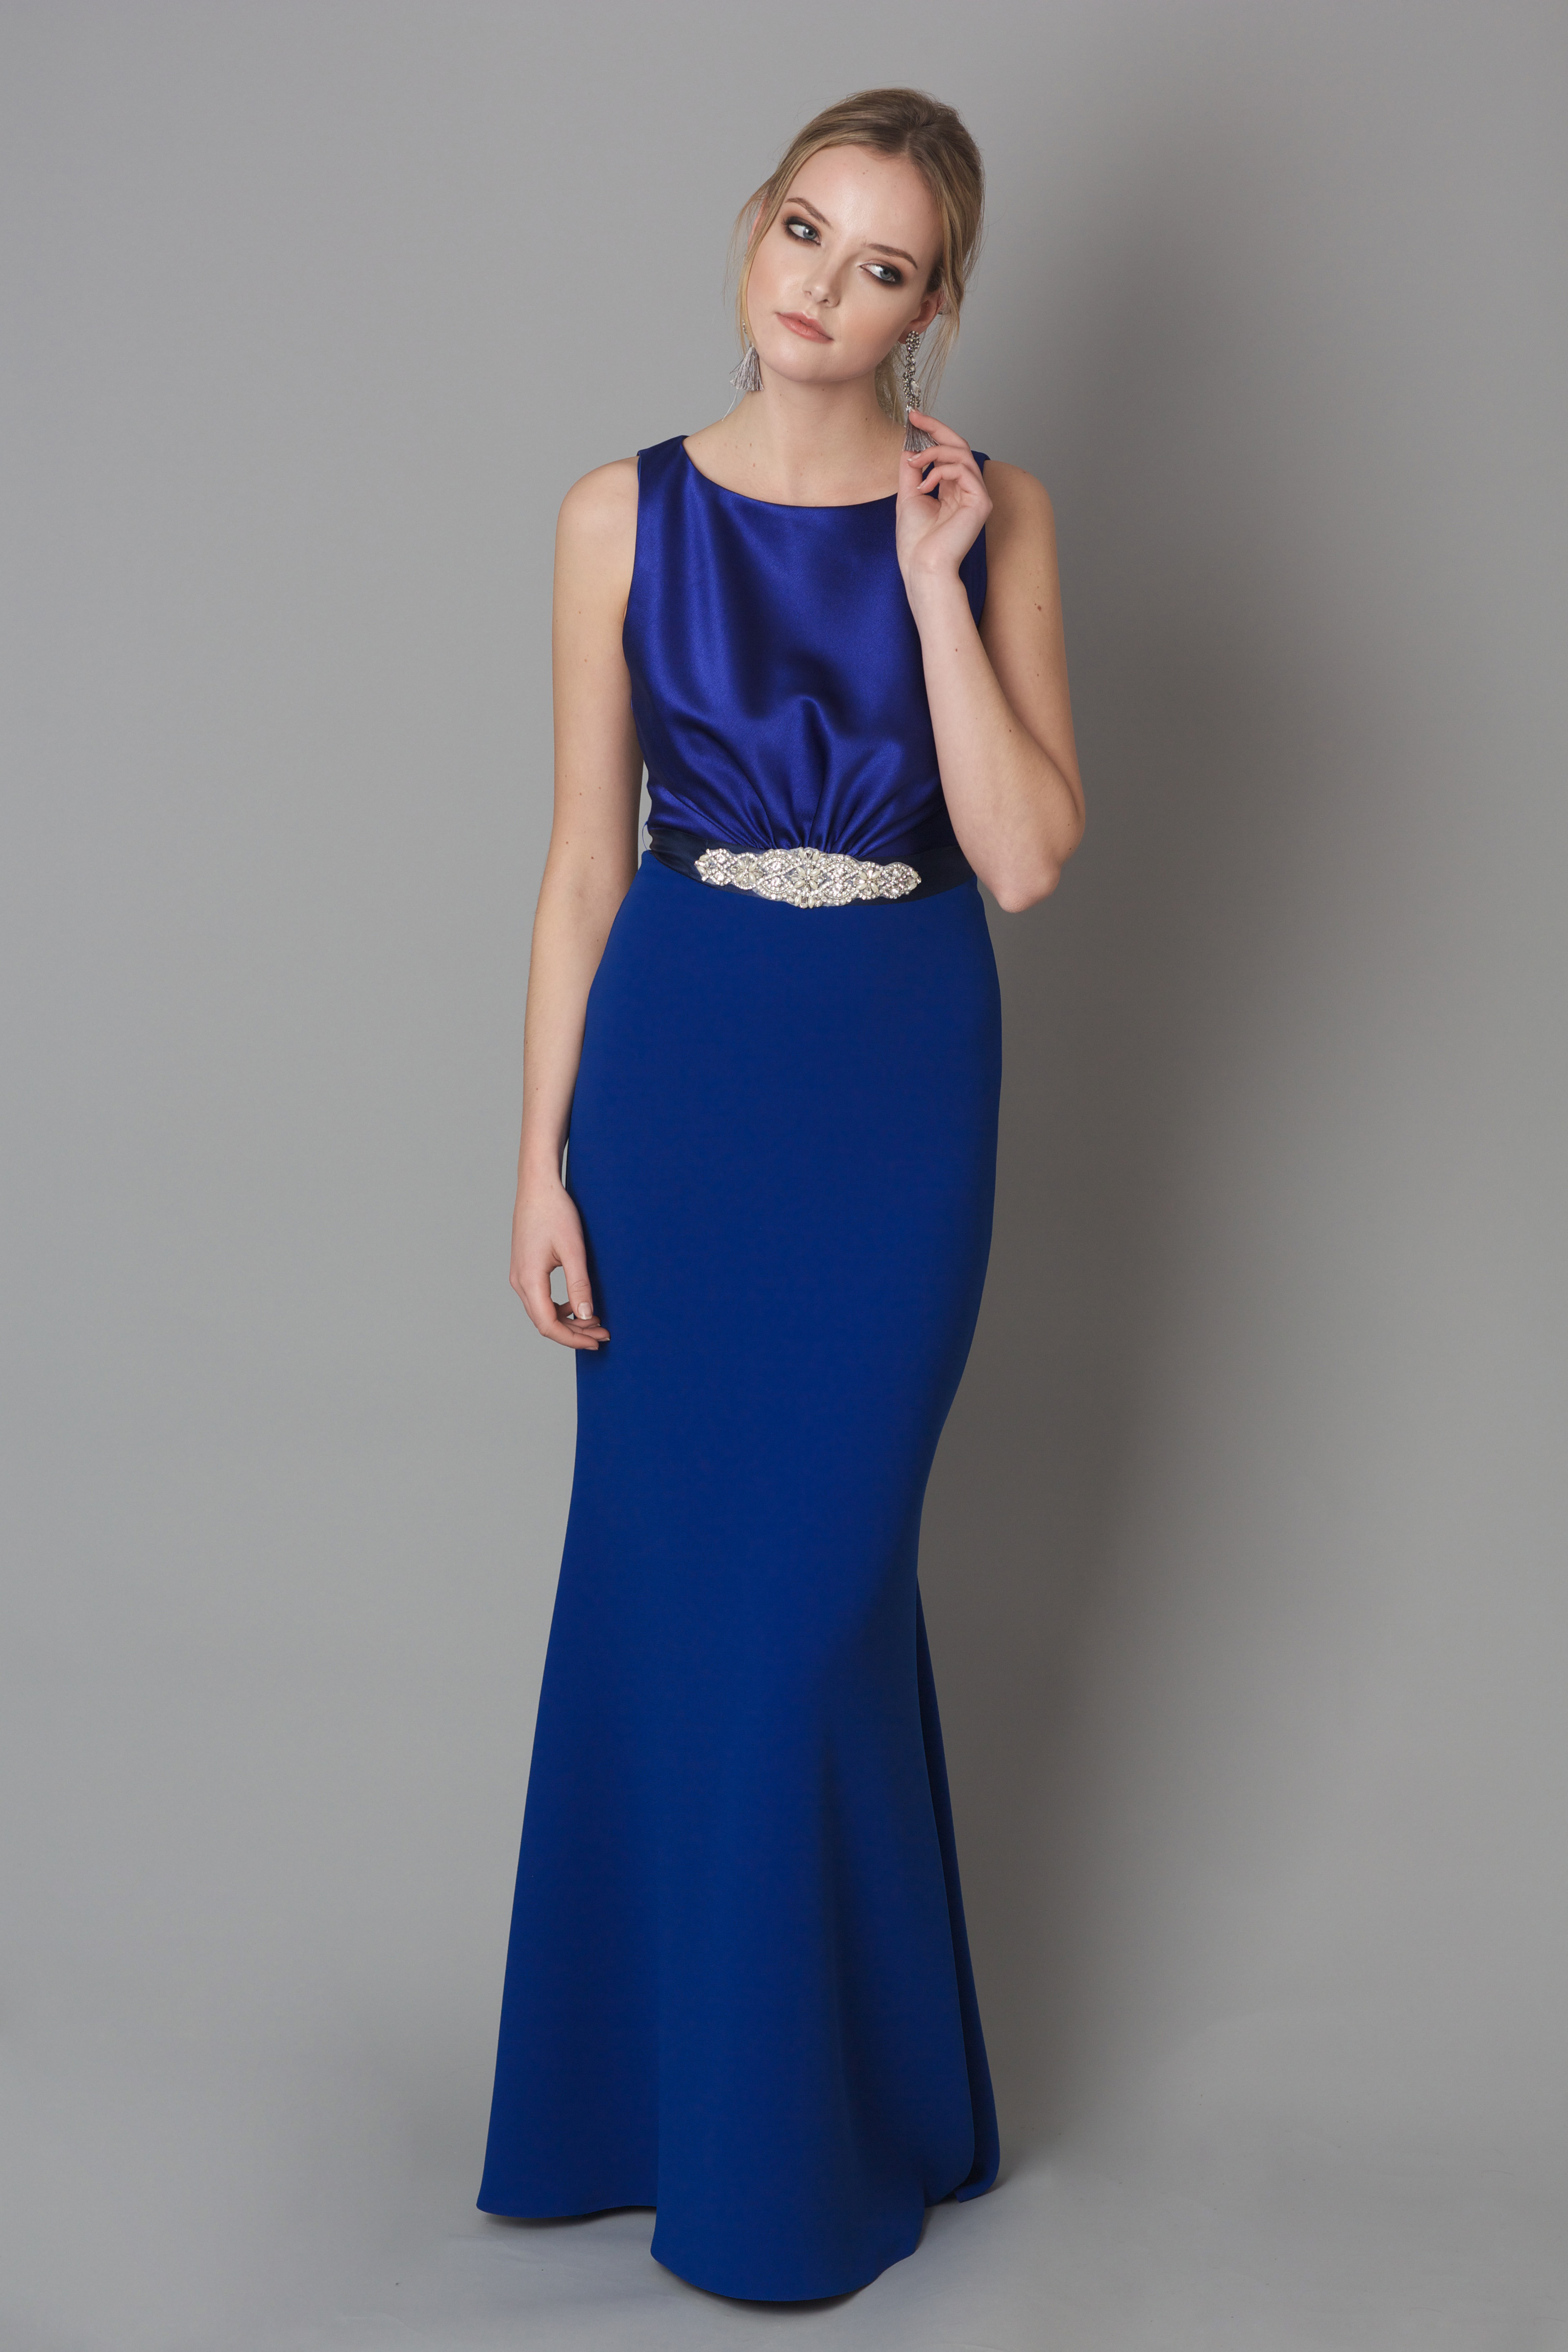 4c5f47906a Bridesmaid Evening   Debs Dresses from Dresscode